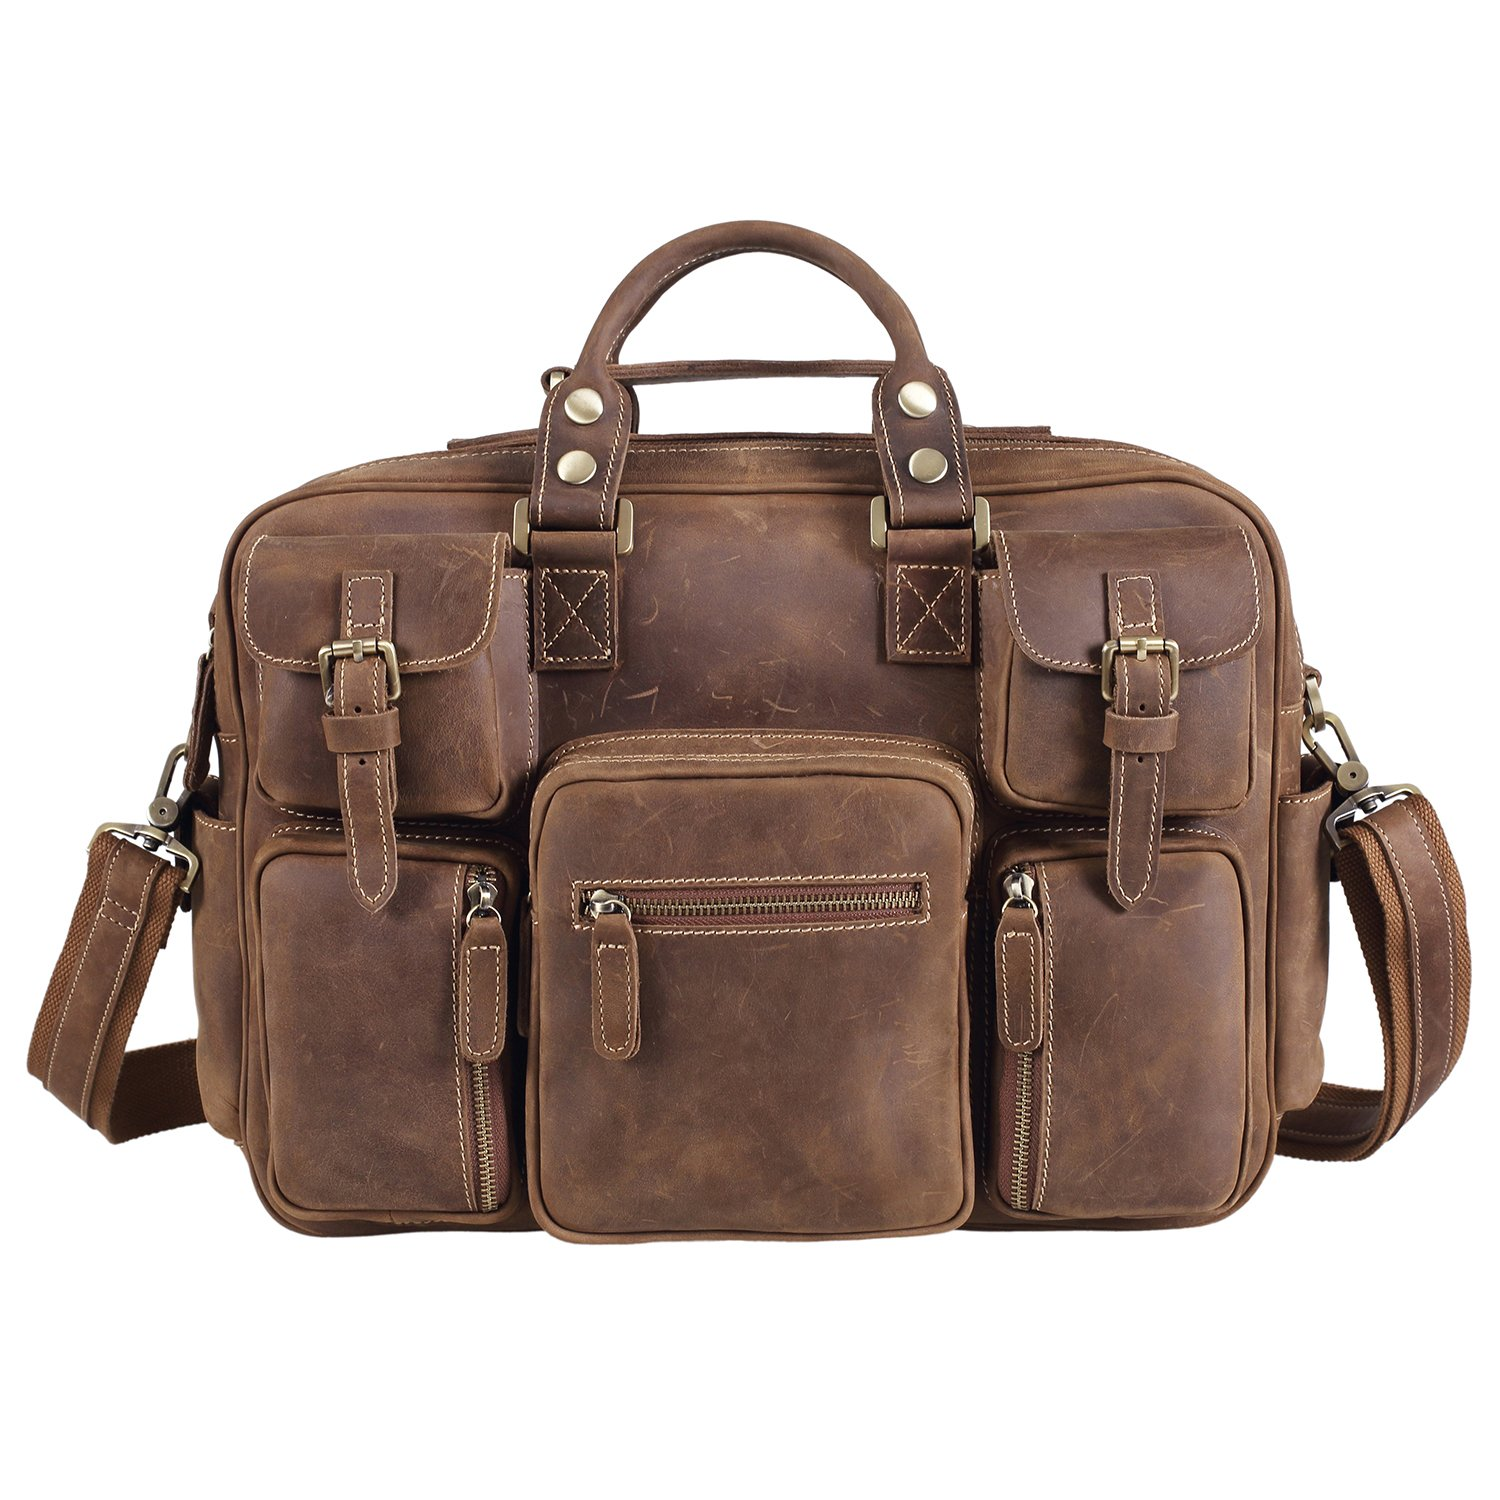 Texbo Vintage Genuine Cowhide Leather Messenger Briefcase Shoulder Bag Tote by Texbo (Image #2)